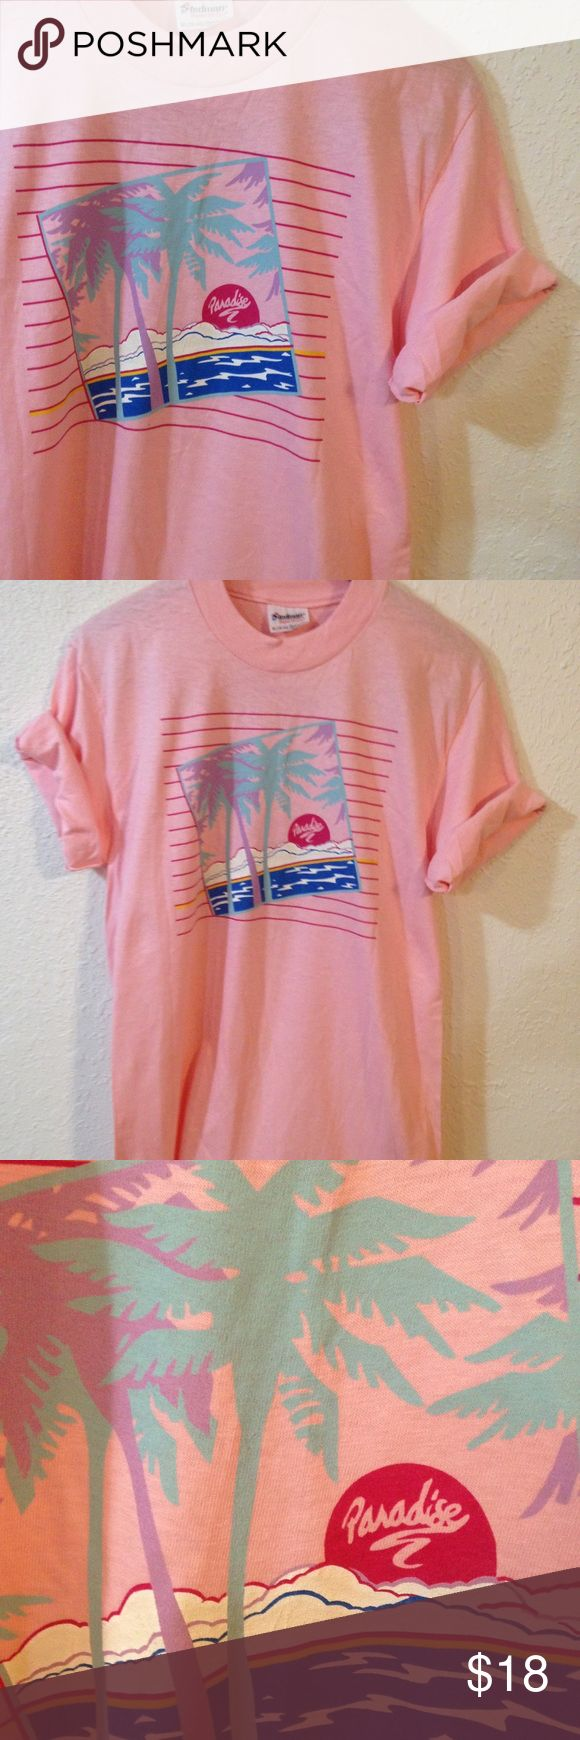 "Vintage pastel beach t-shirt pink ocean Sweet vintage beachy shirt!  Pastel retro graphic that reads, ""paradise"". Ocean, clouds, palm trees. 100% cotton. Excellent vintage condition!  Oversized t-shirt / throwback / 90s / 1990s / souvenir / truck stop / tourist / vacation / unisex / womens / mens / women's / men's / hipster / grunge / pink / purple / blue / tee / vtg Vintage Tops Tees - Short Sleeve"